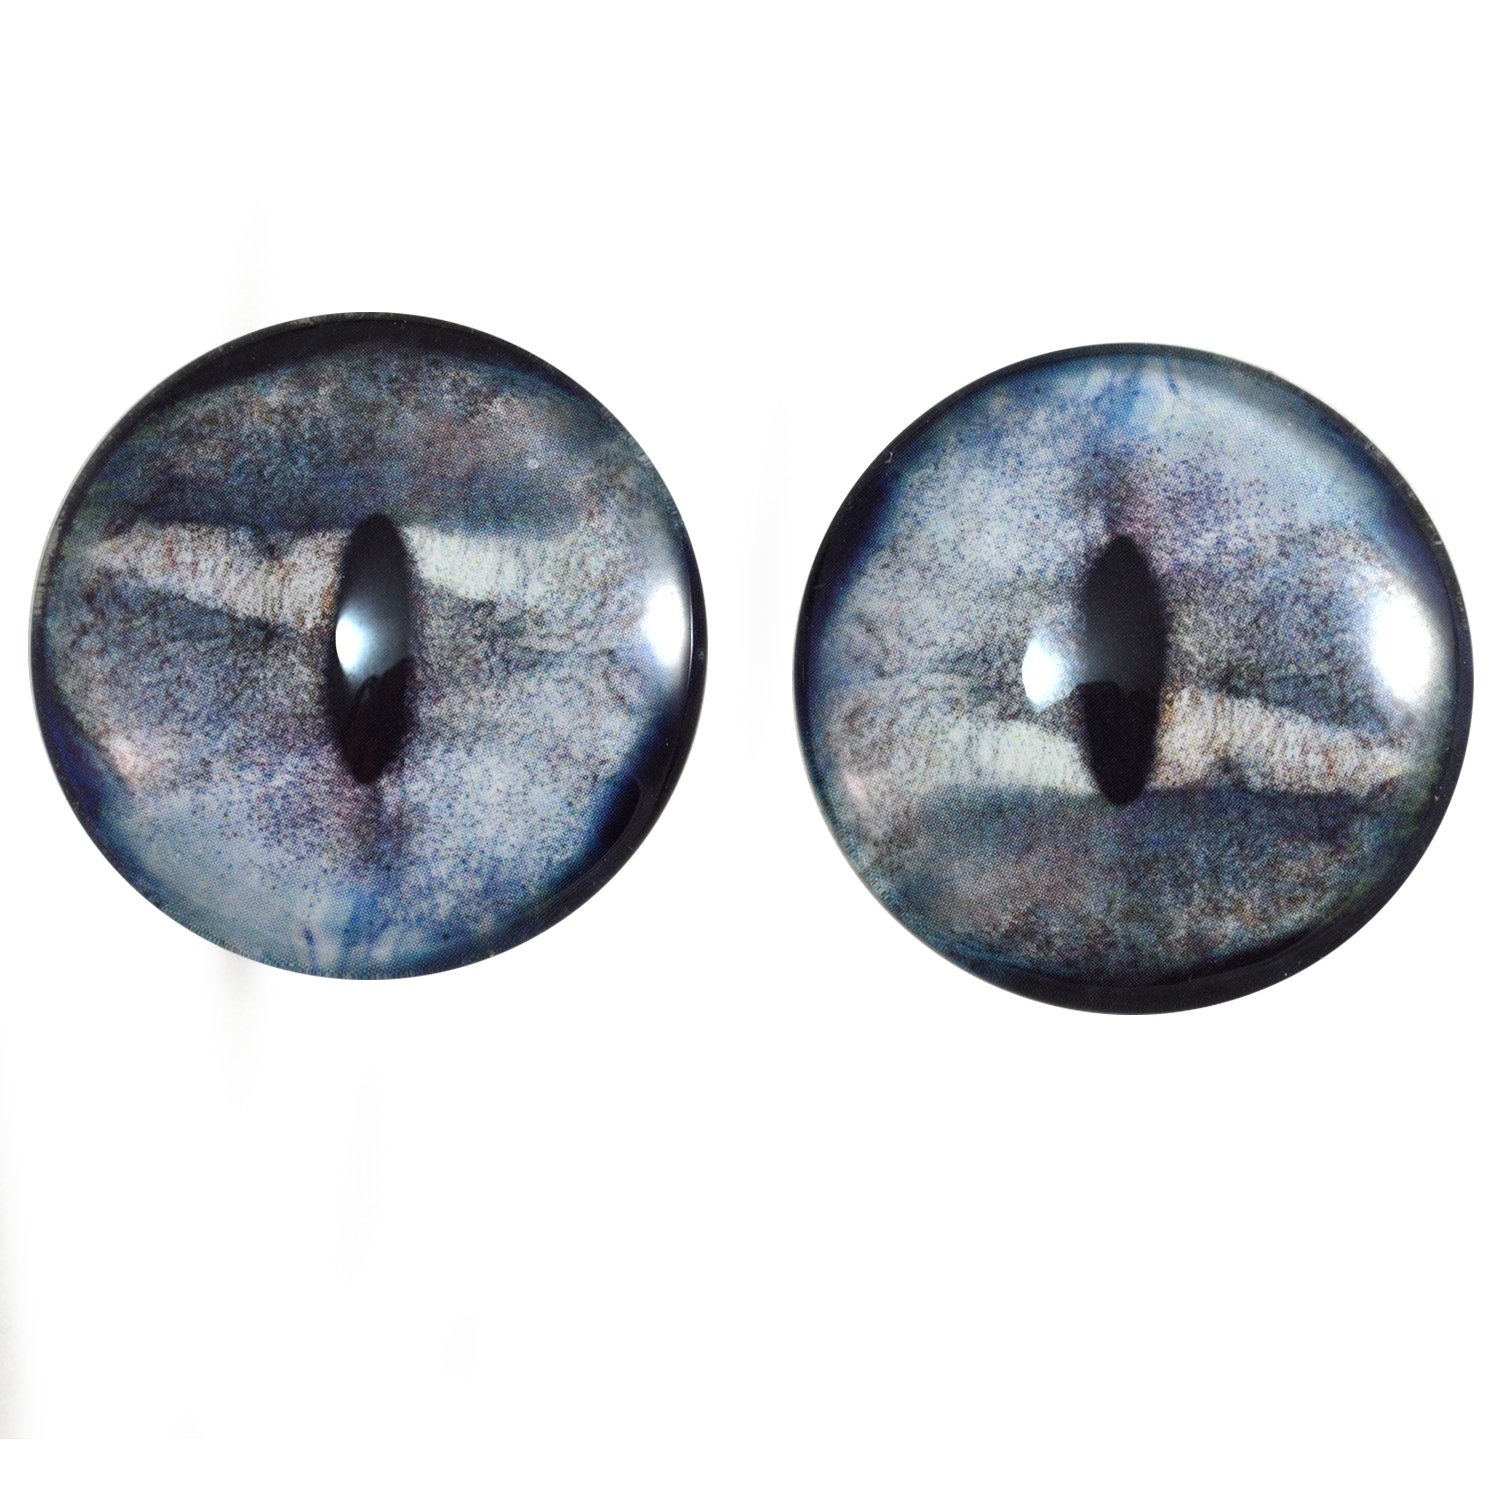 for Jewelry Making Sculptures Dolls Extra Large 40mm Pair of Shark Glass Eyes More